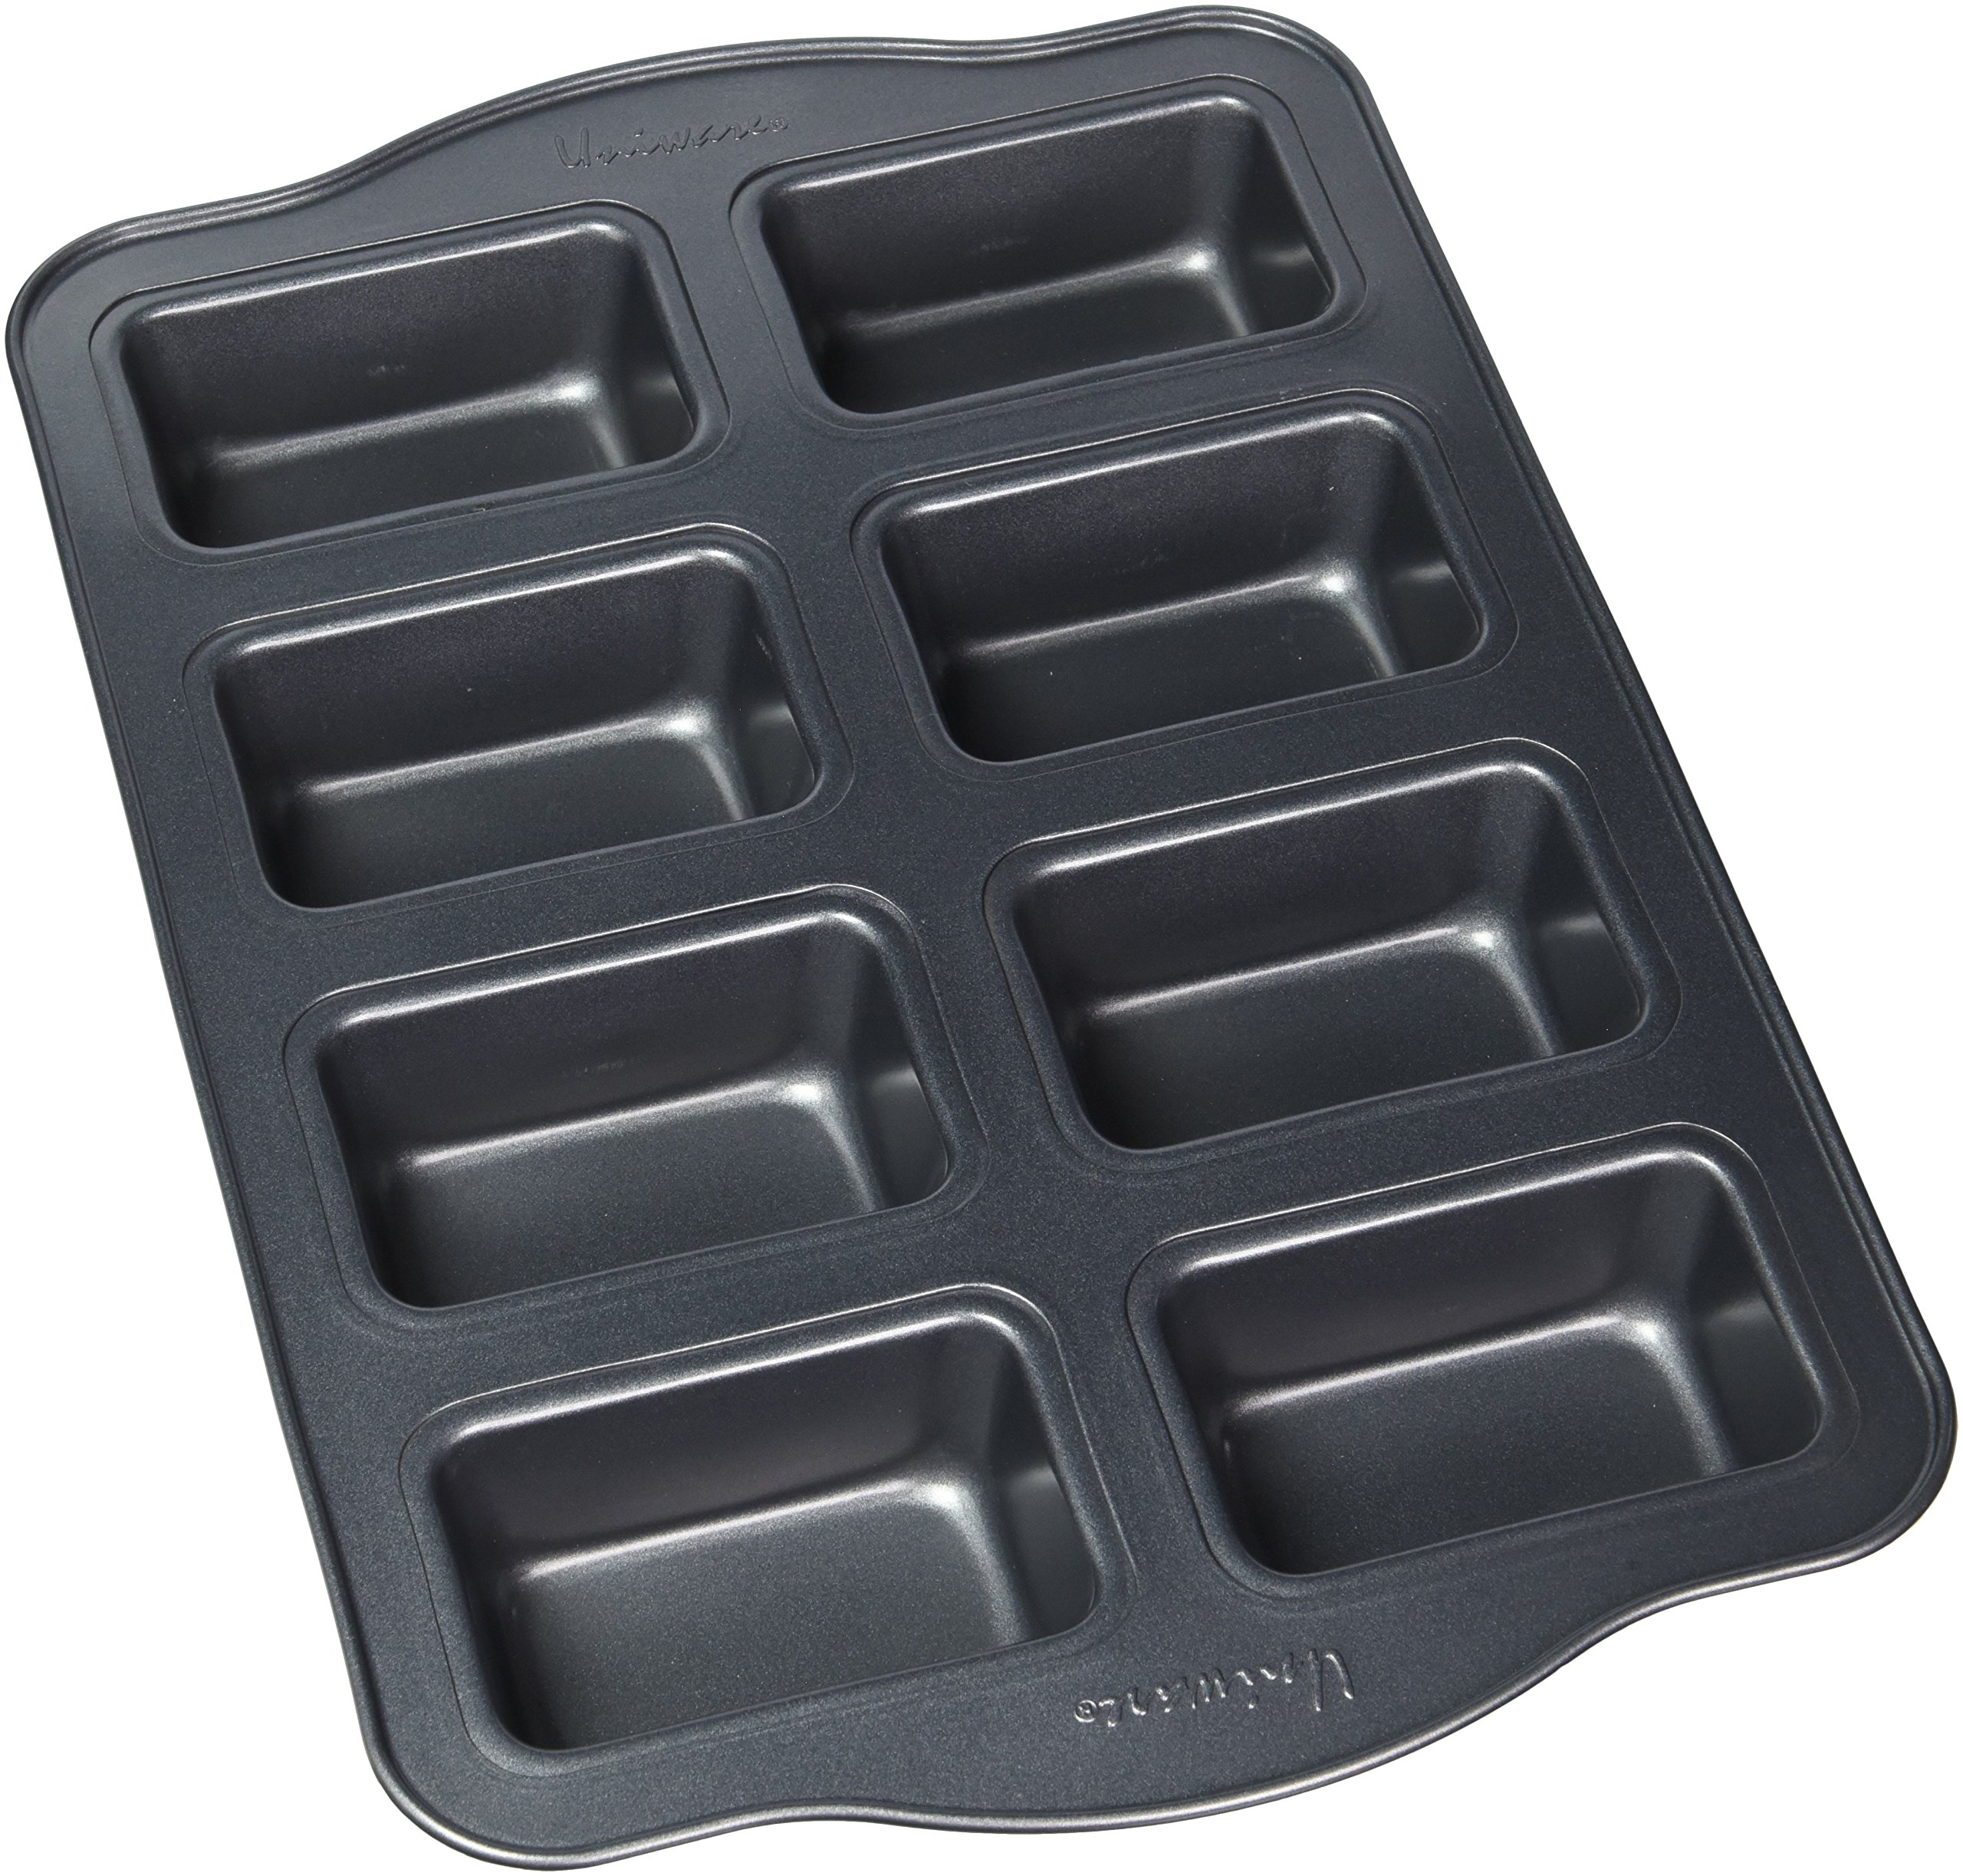 Uniware Nonstick Muffin Pan with Oversized Handles, Horma Antiadherente Para Muffins (8 Cups(Square))